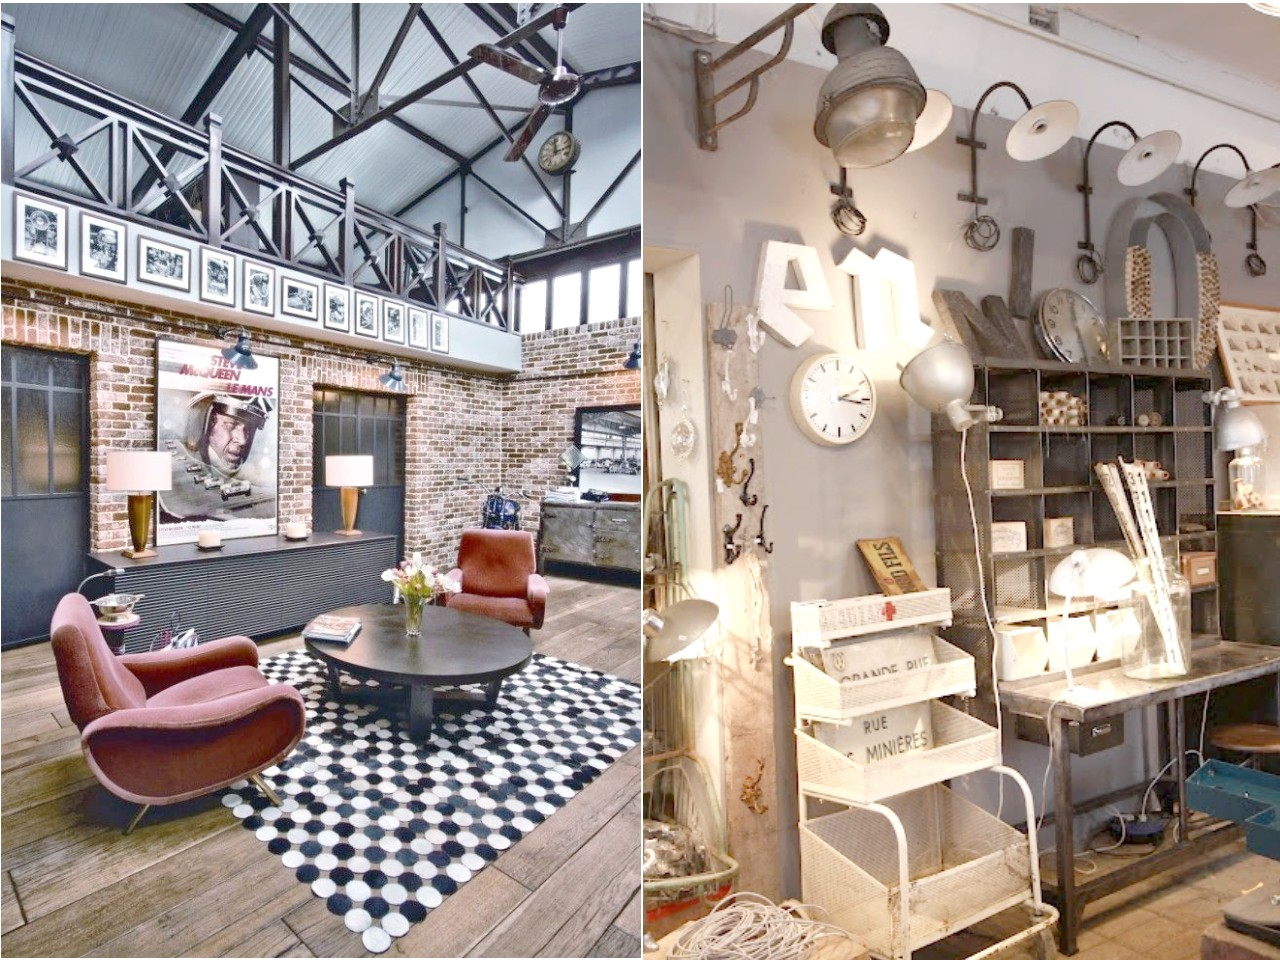 6 claves para una decoraci n vintage industrial que te for Decoracion piso estilo retro